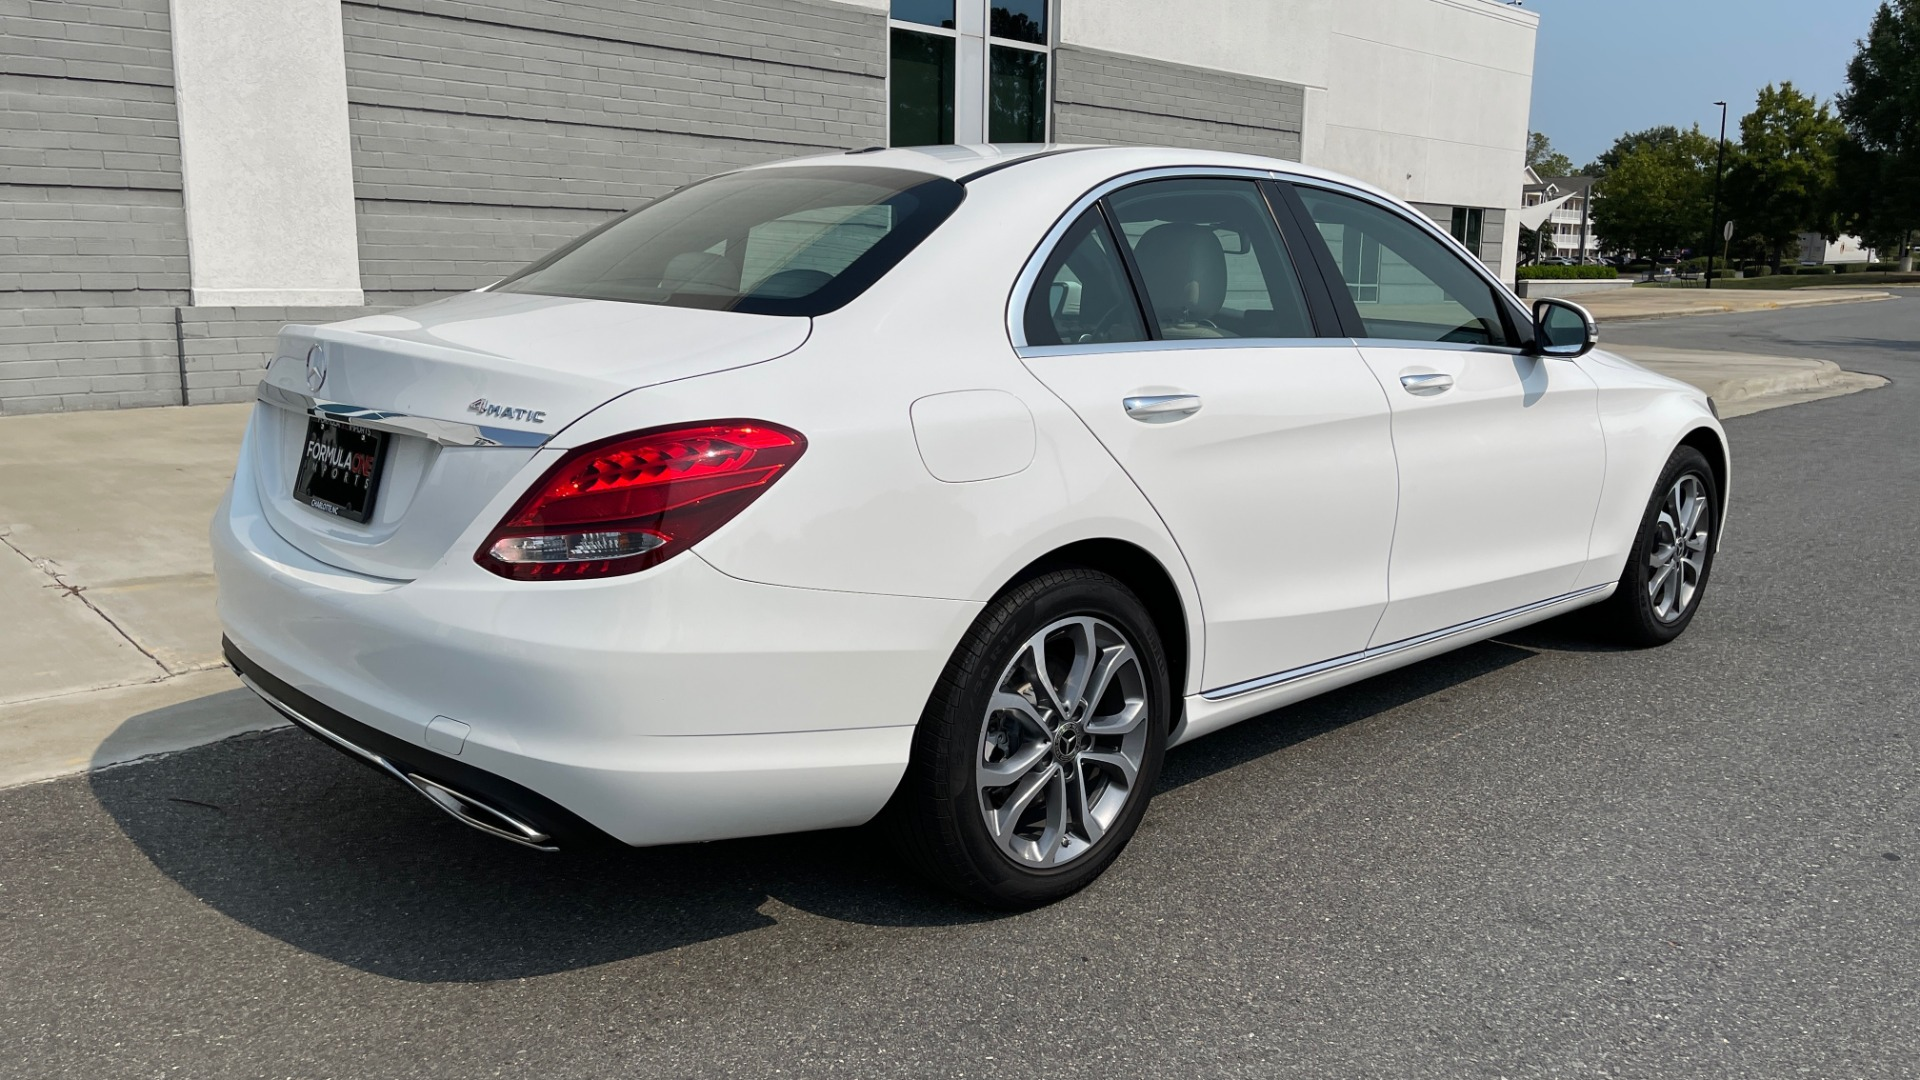 Used 2018 Mercedes-Benz C-Class C 300 4MATIC / PREMIUM / BURMESTER / HTD STS / SUNROOF / REARVIEW for sale $33,995 at Formula Imports in Charlotte NC 28227 2